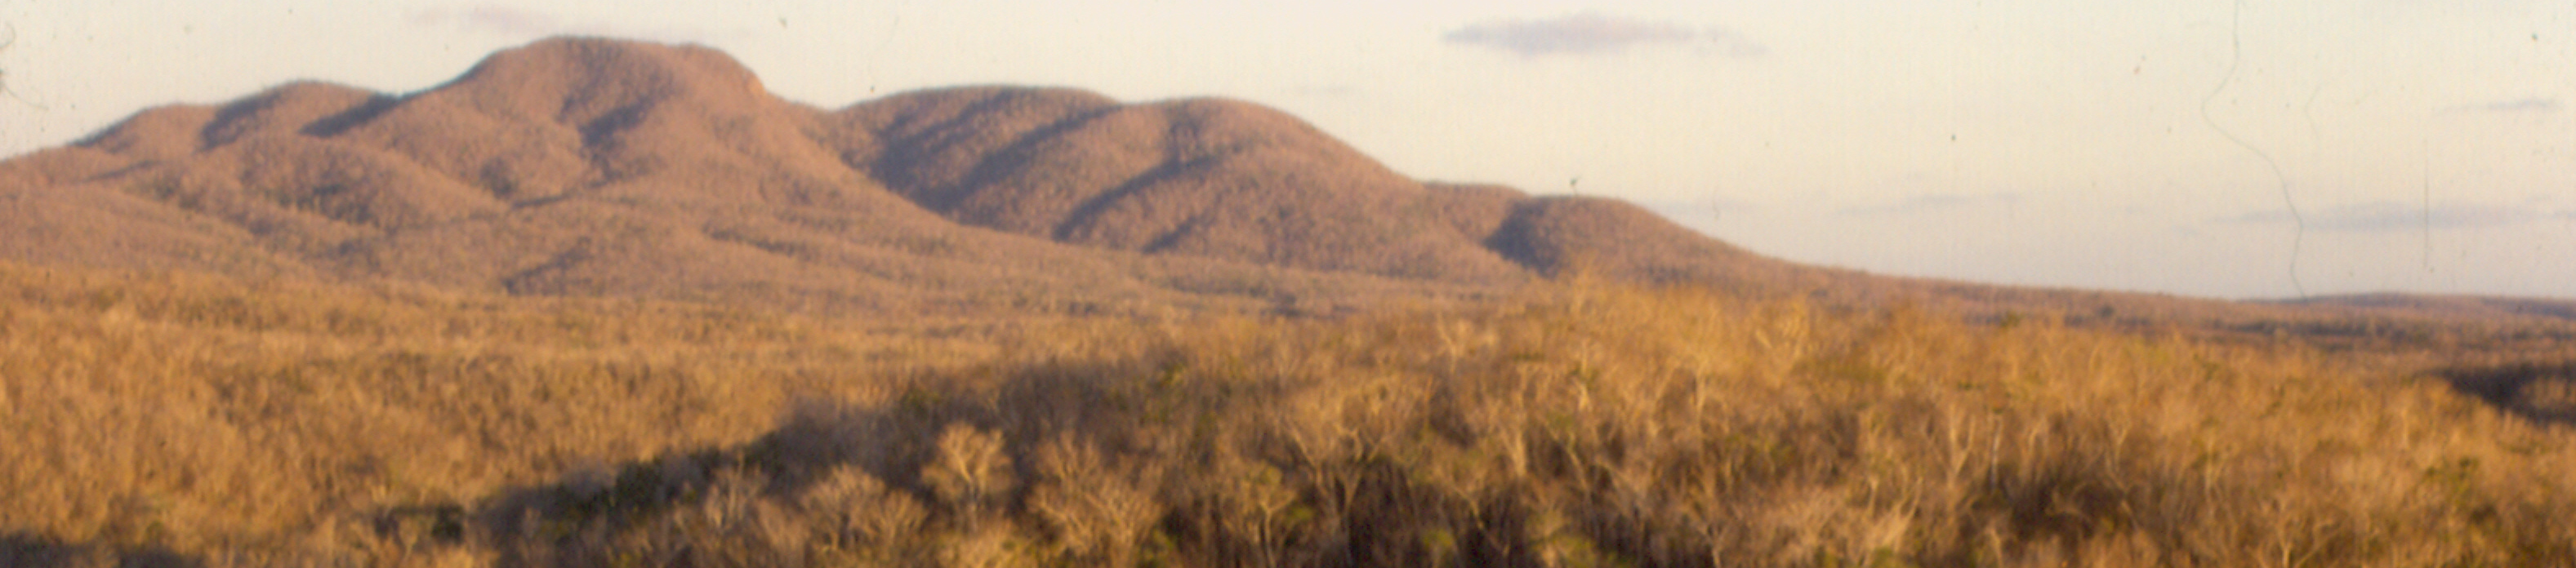 DMM-0185-copy_edited-1.jpg